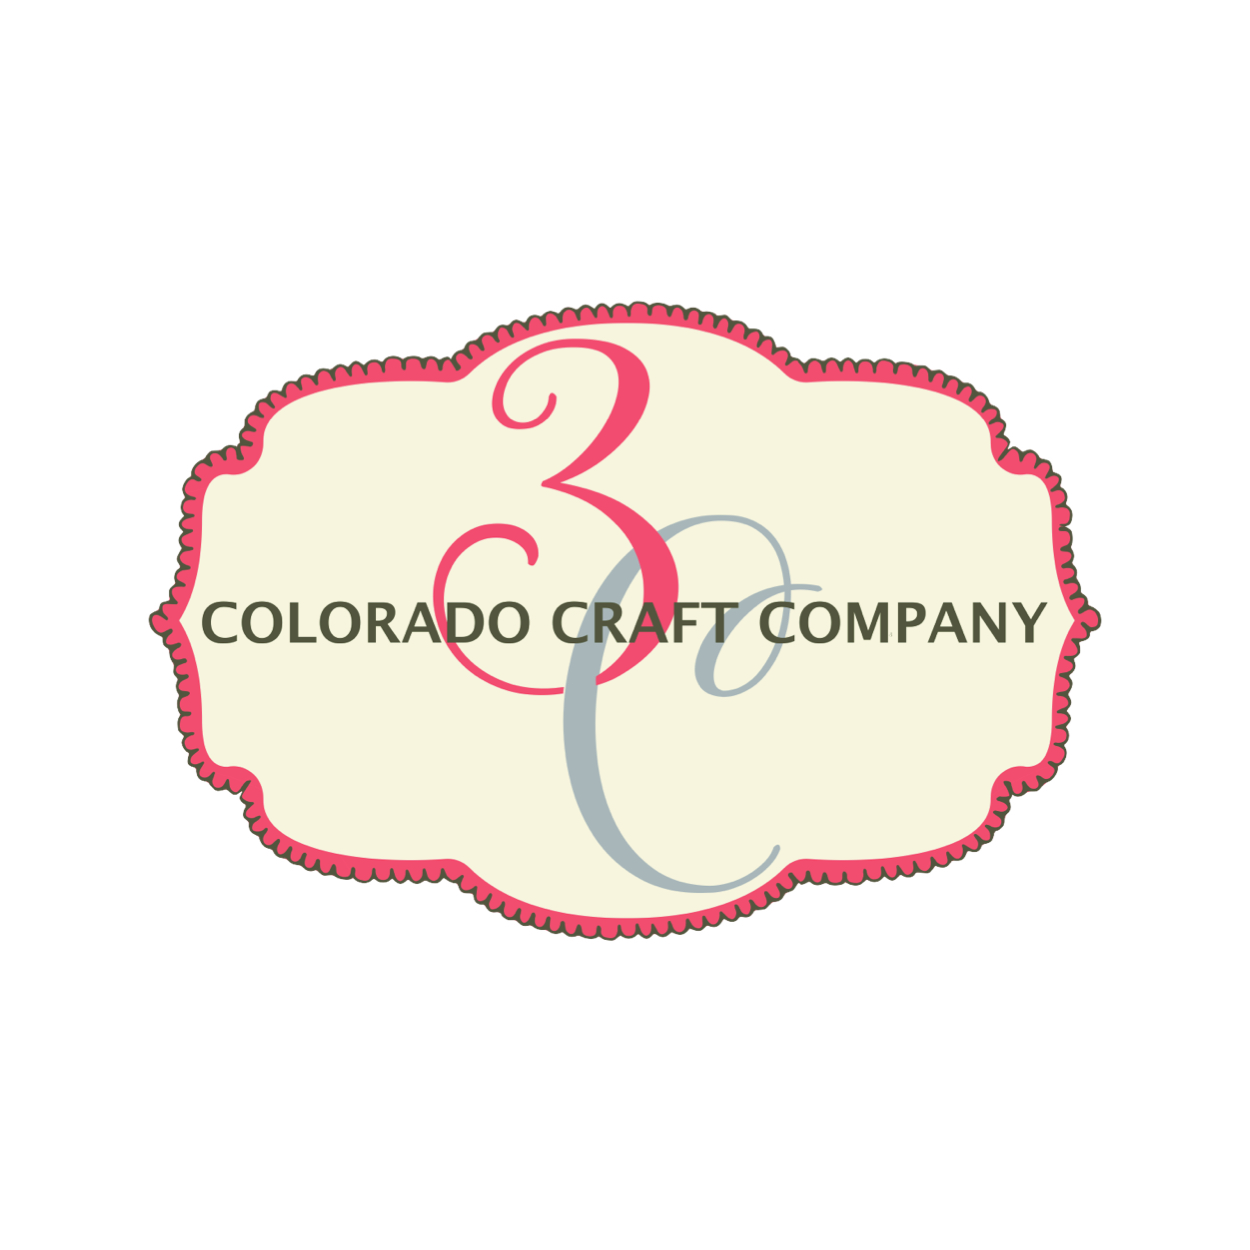 Colorado Craft Company brand image